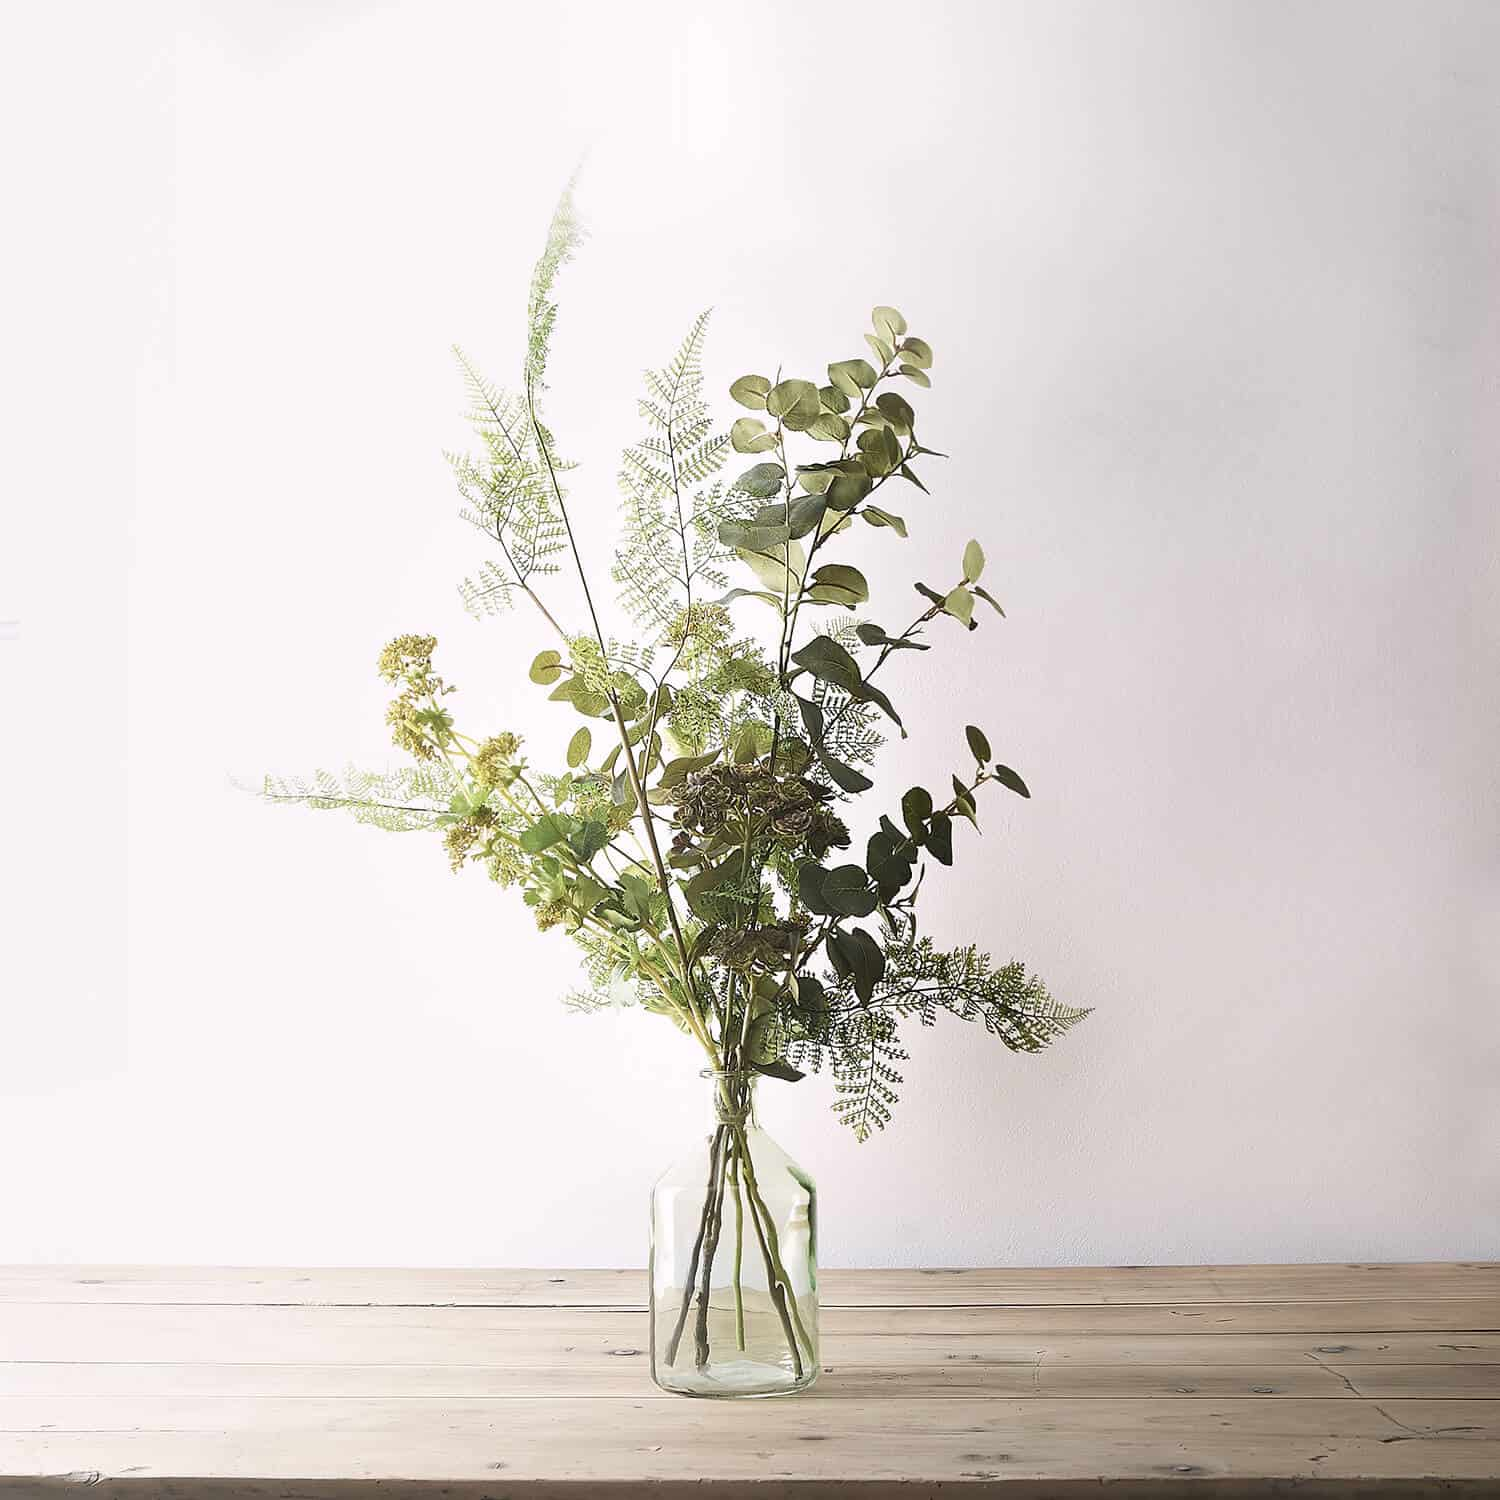 Artificial flower arrangement photographed in the studio with diffused lighting on rustic industrial surface